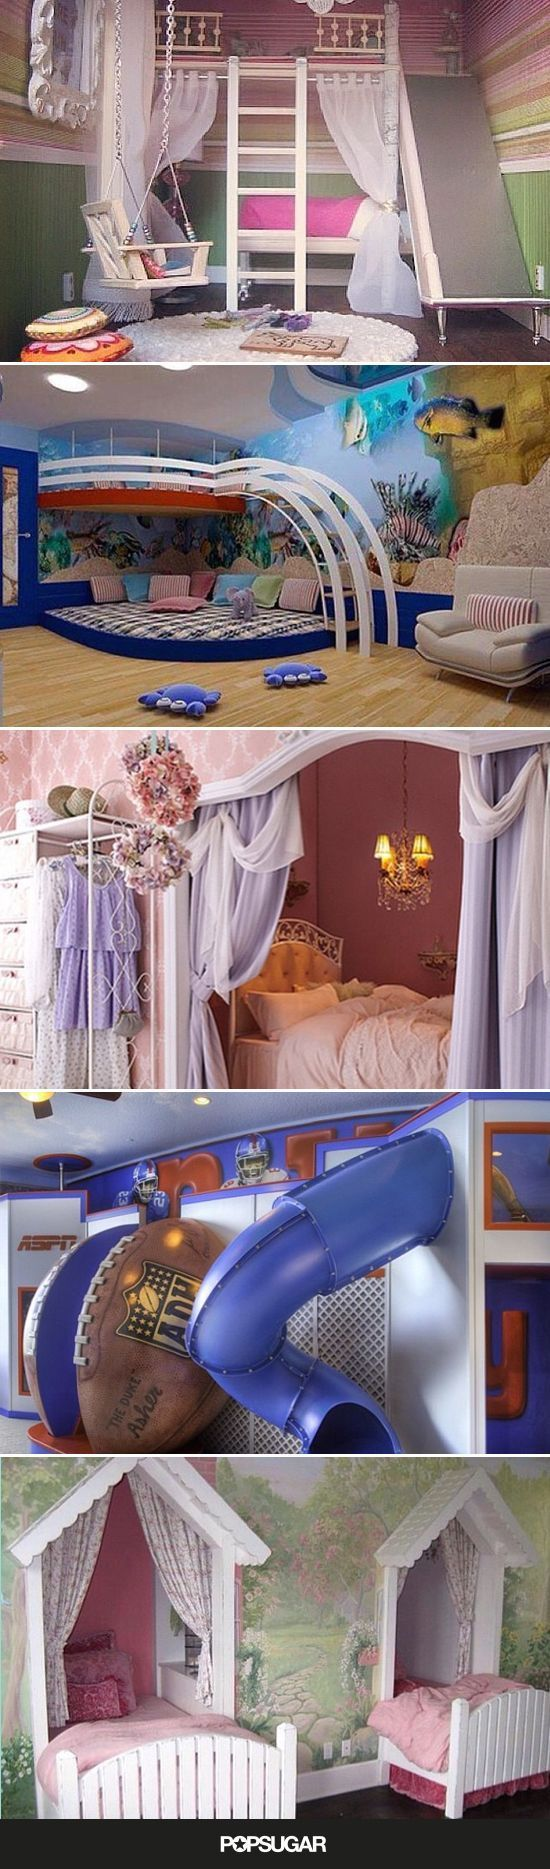 Best 25+ Cool room decor ideas on Pinterest | Diy for room, Diy ...